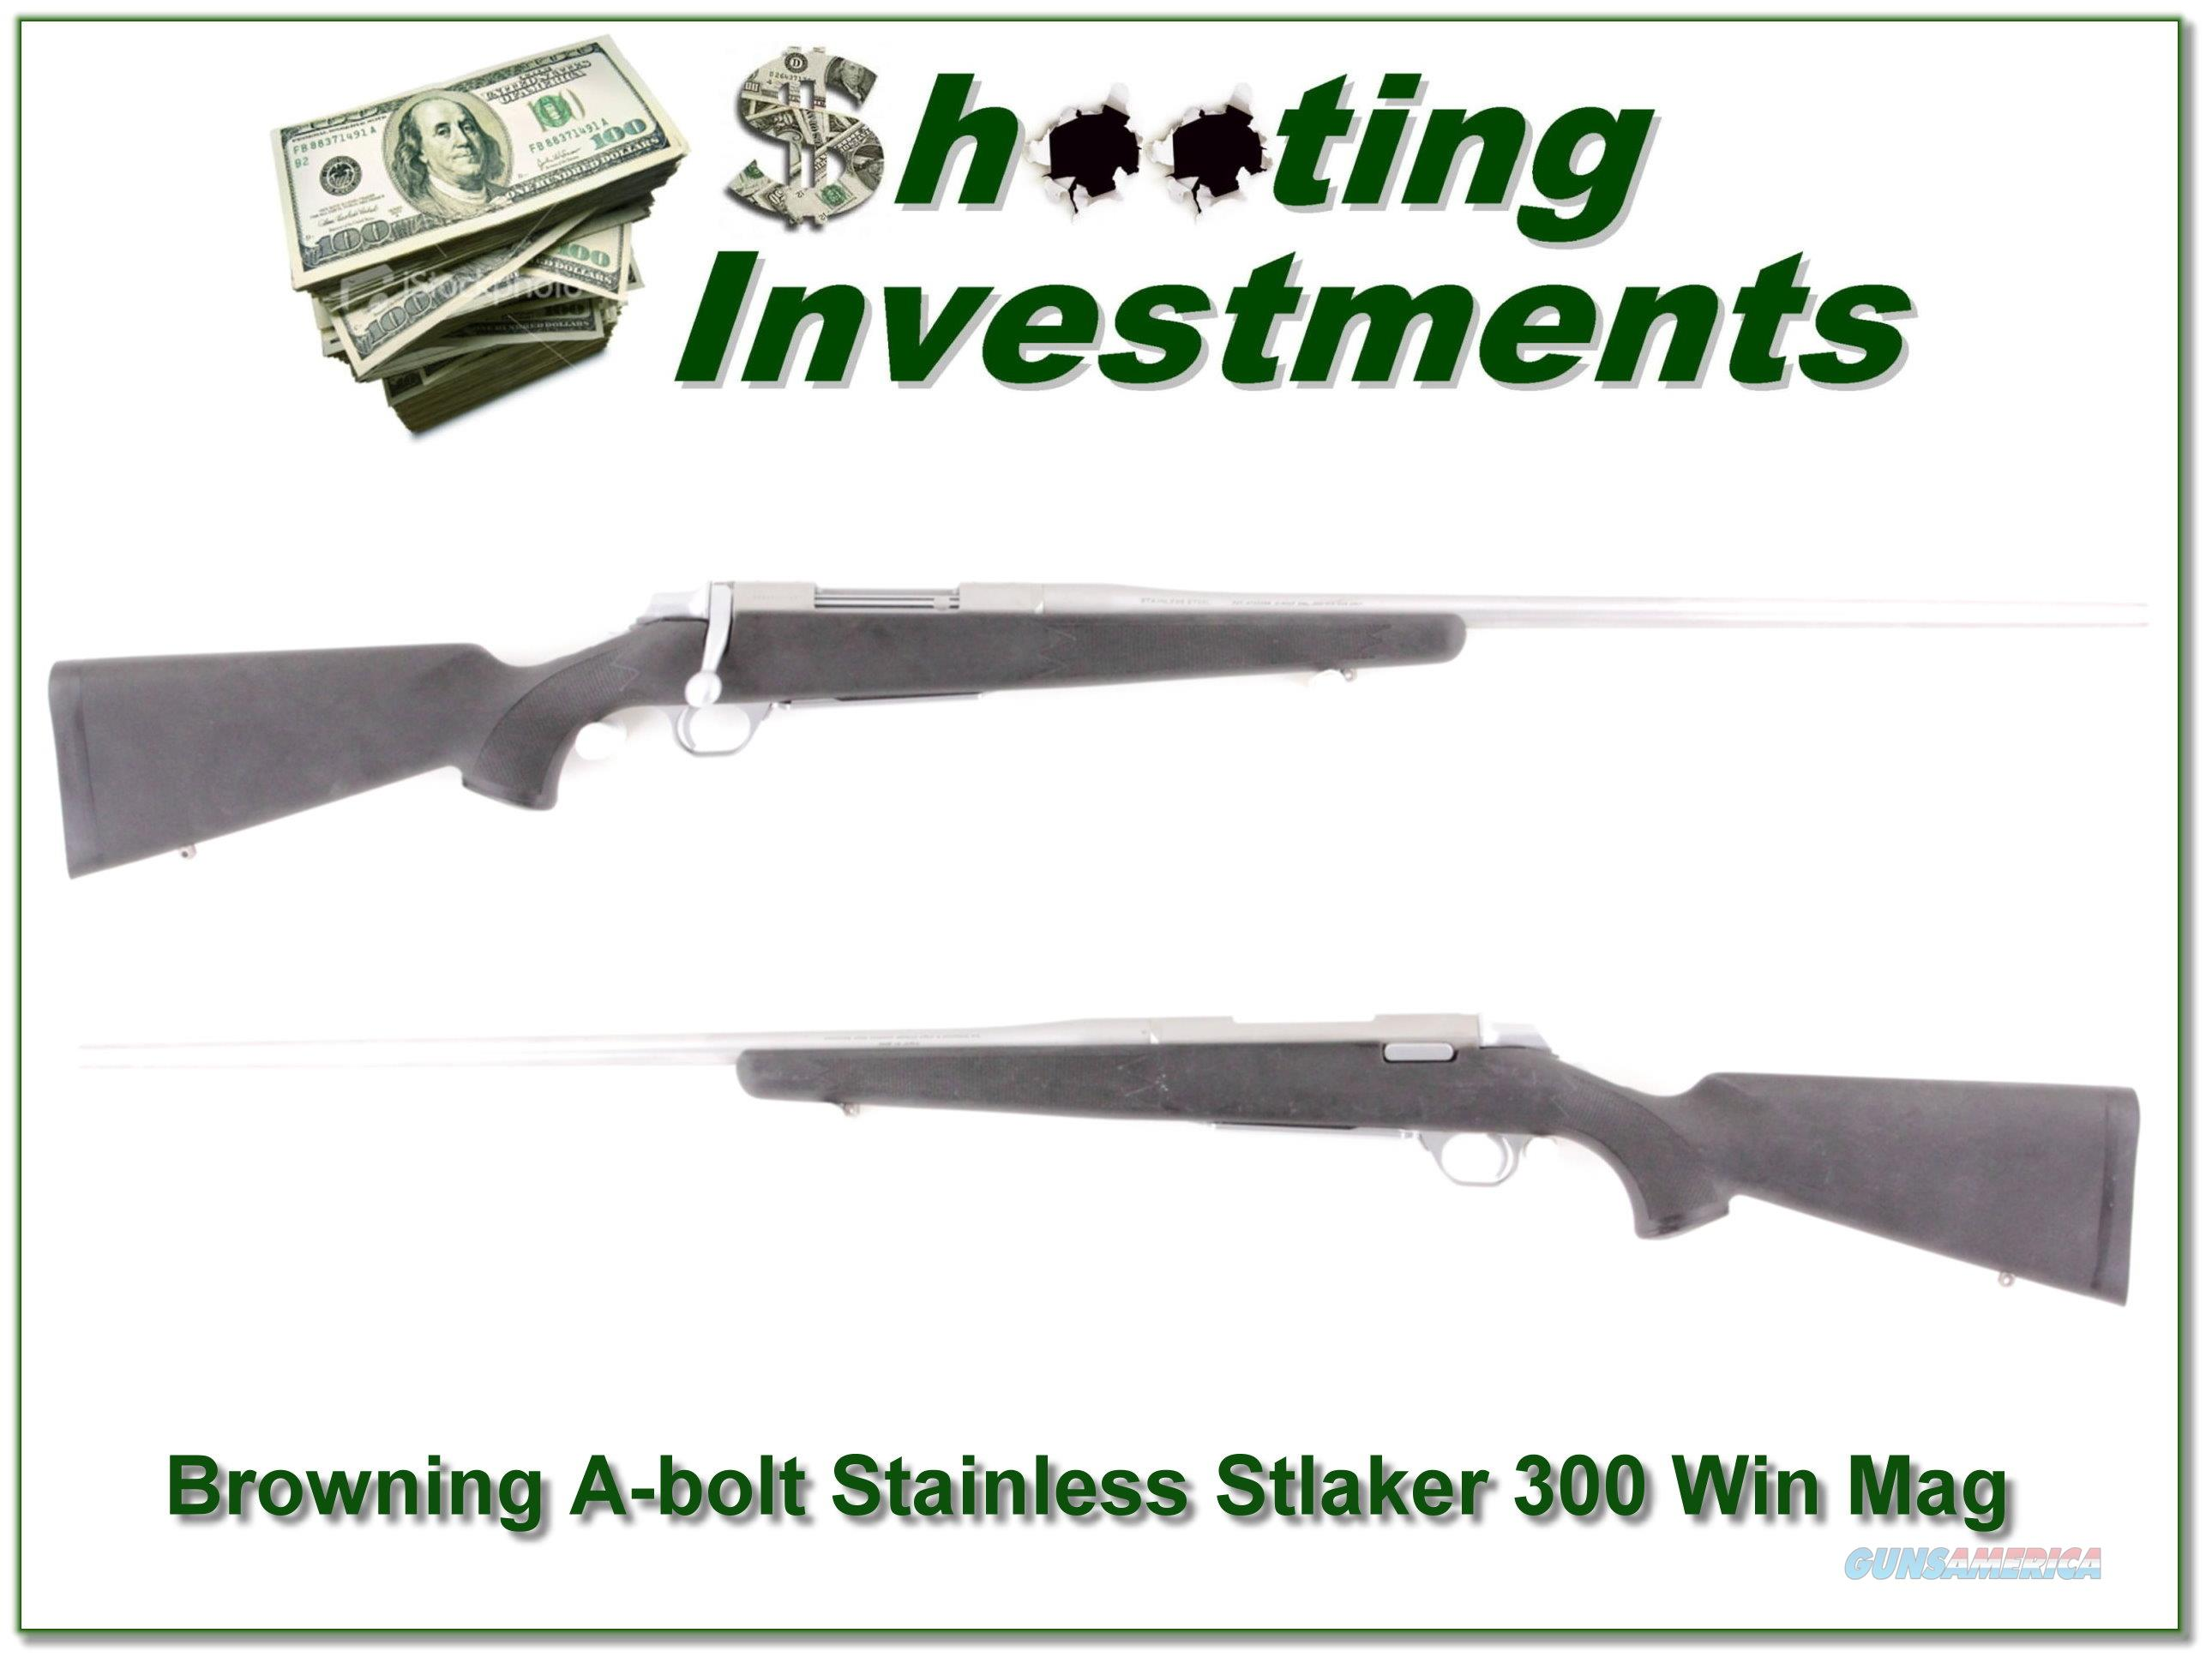 Browning A-bolt Stainless Stalker 300 Win Mag  Guns > Rifles > Browning Rifles > Bolt Action > Hunting > Stainless